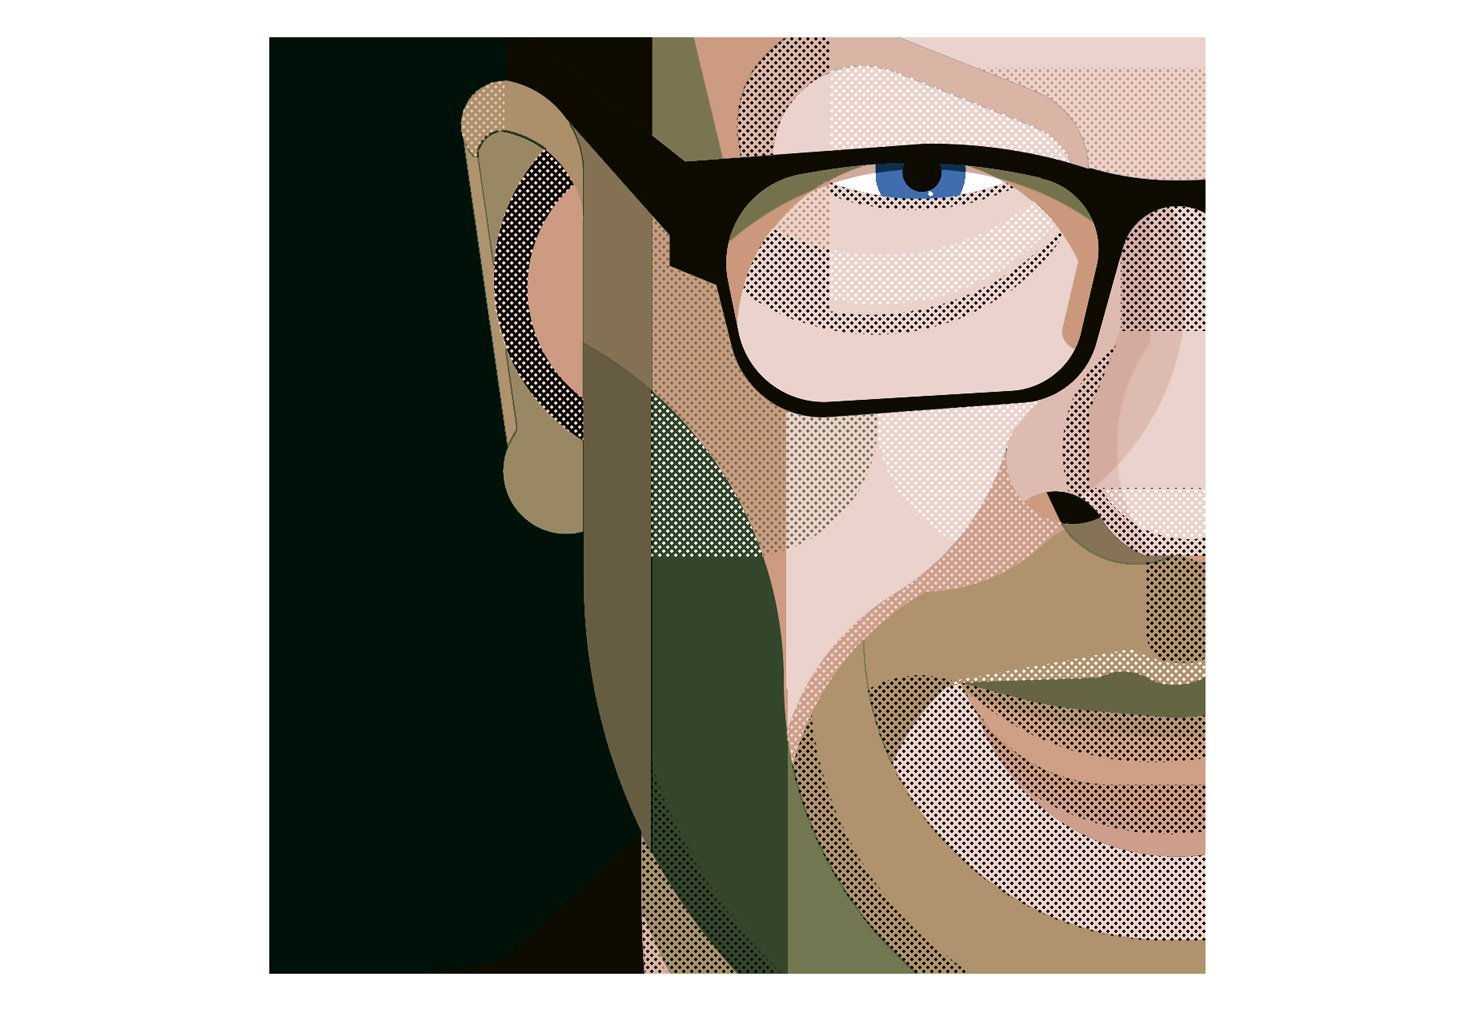 lars-von-trier-illustrated-portrait-detail